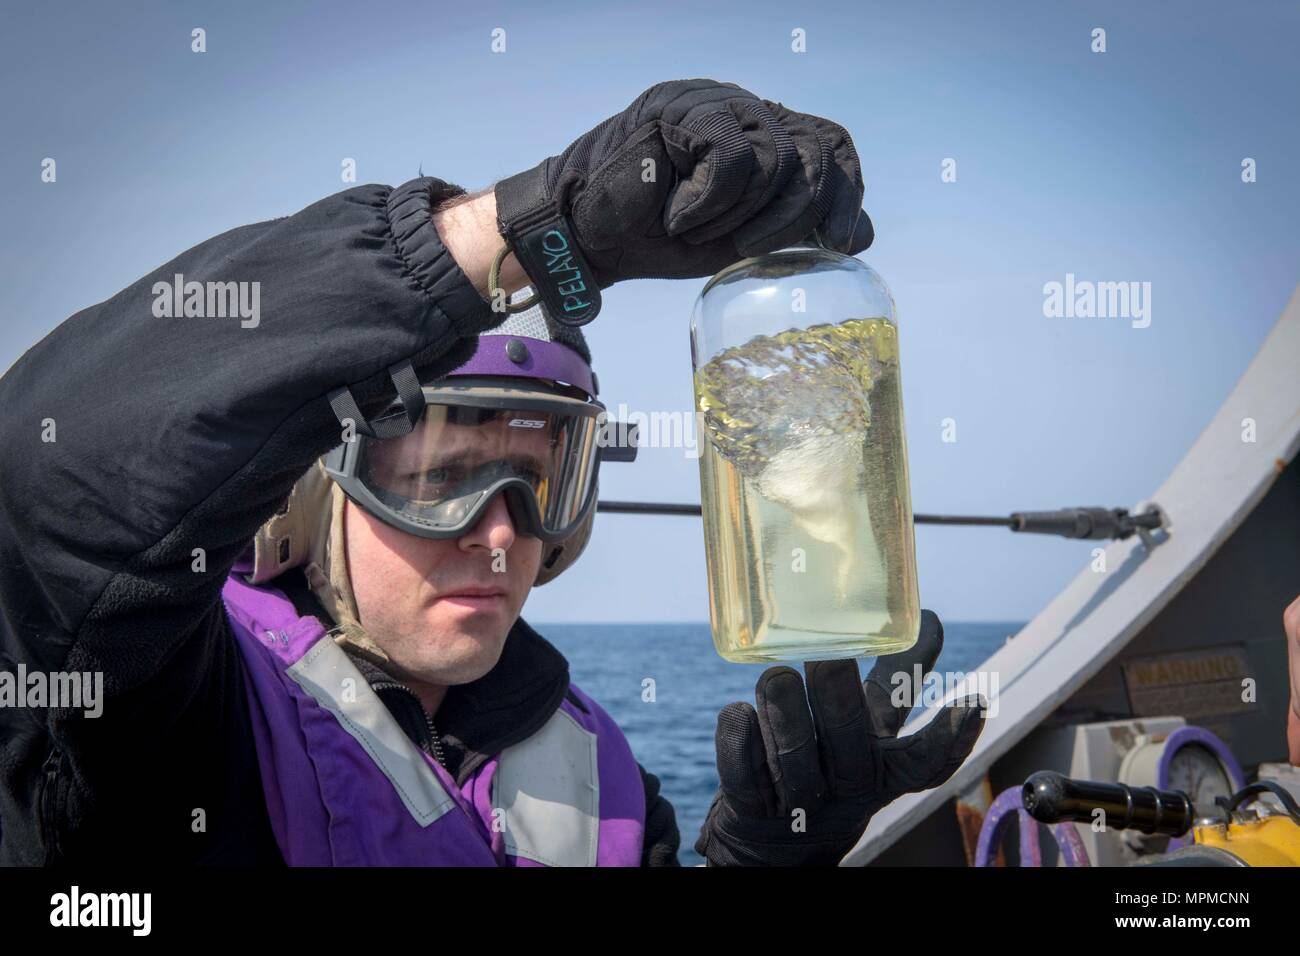 WATERS EAST OF THE KOREAN PENINSULA (March 22, 2017) Gas Turbine Systems Technician (Mechanical) 2nd Class Taylor Poling, assigned to the Arleigh Burke-class guided-missile destroyer USS Stethem (DDG 63), checks JP-5 fuel for impurities prior to a passenger transport with the Nimitz-class aircraft carrier USS Carl Vinson (CVN 70) during Foal Eagle (FE) 17. FE 17 is a series of annual training events designed to increase readiness to defend the ROK, protect the region, and maintain stability in the Korean Peninsula. (U.S. Navy photo by Mass Communication Specialist 2nd Class Ryan Harper/ Releas - Stock Image